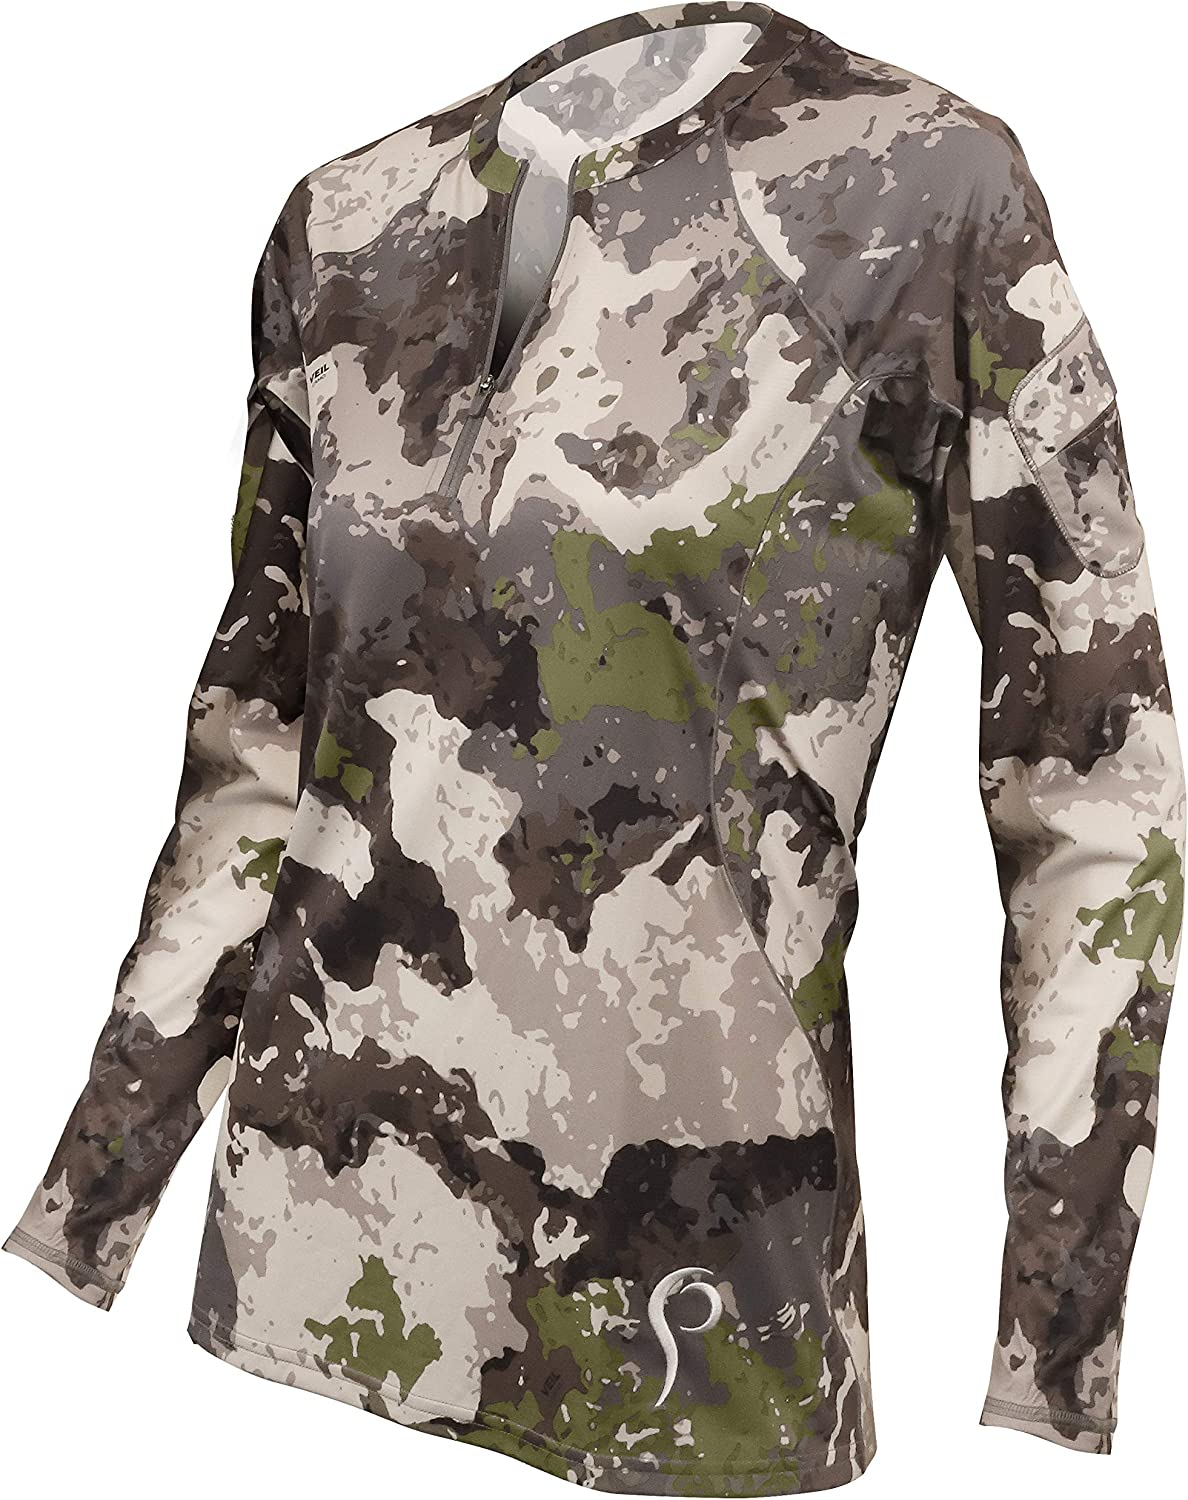 Prois Solas Ultra-Light Long Sleeve- Women's Lightweight Hunting Shirt